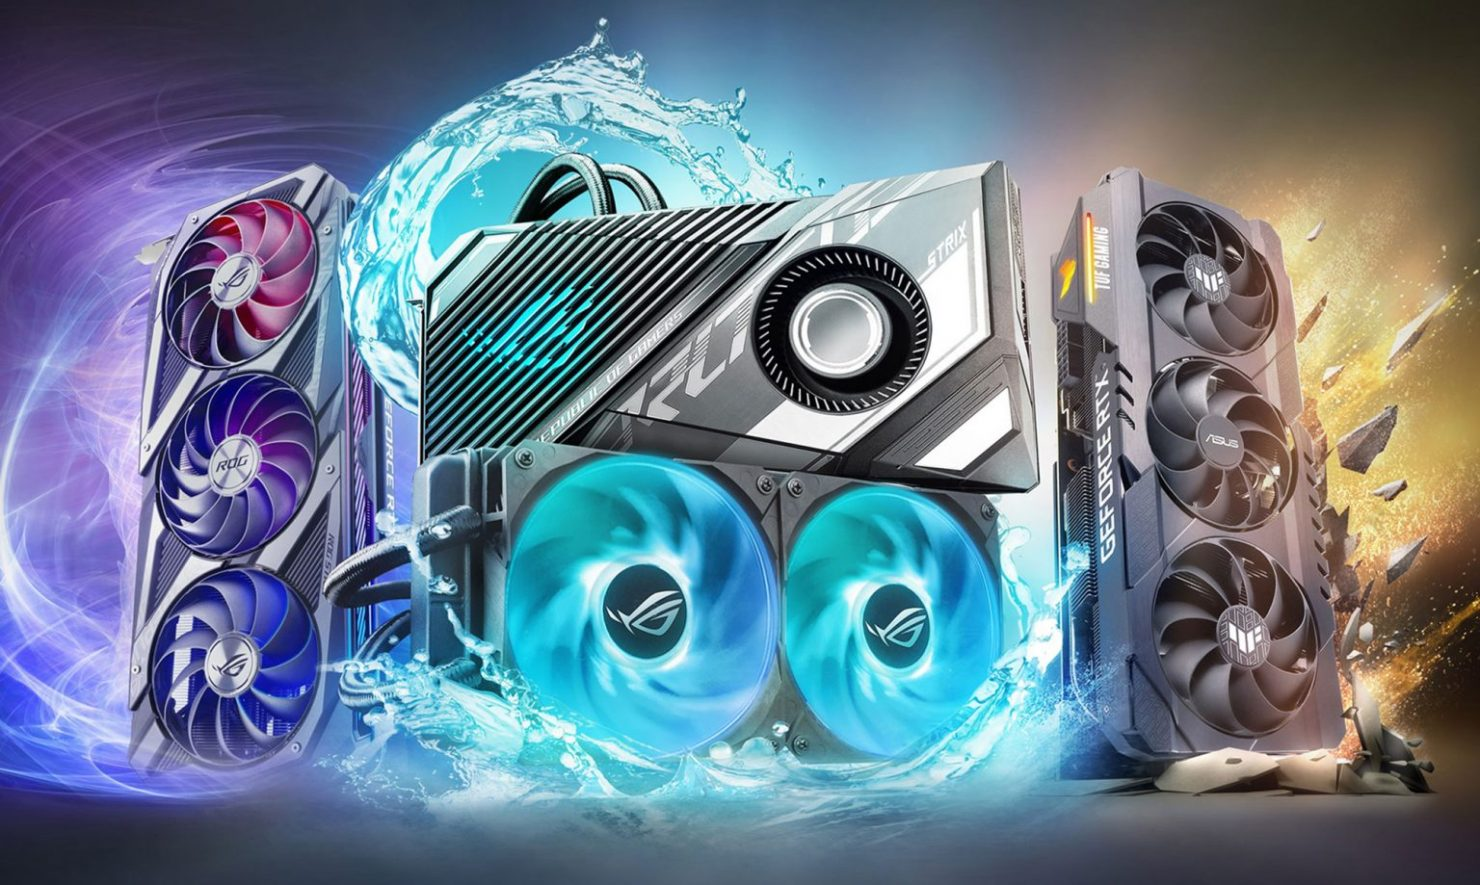 asus-unveils-its-lineup-of-nvidia-geforce-rtx-3080-ti-&-rtx-3070-ti-graphics-cards-featuring-the-rog-strix-(lc)-&-tuf-gaming-models